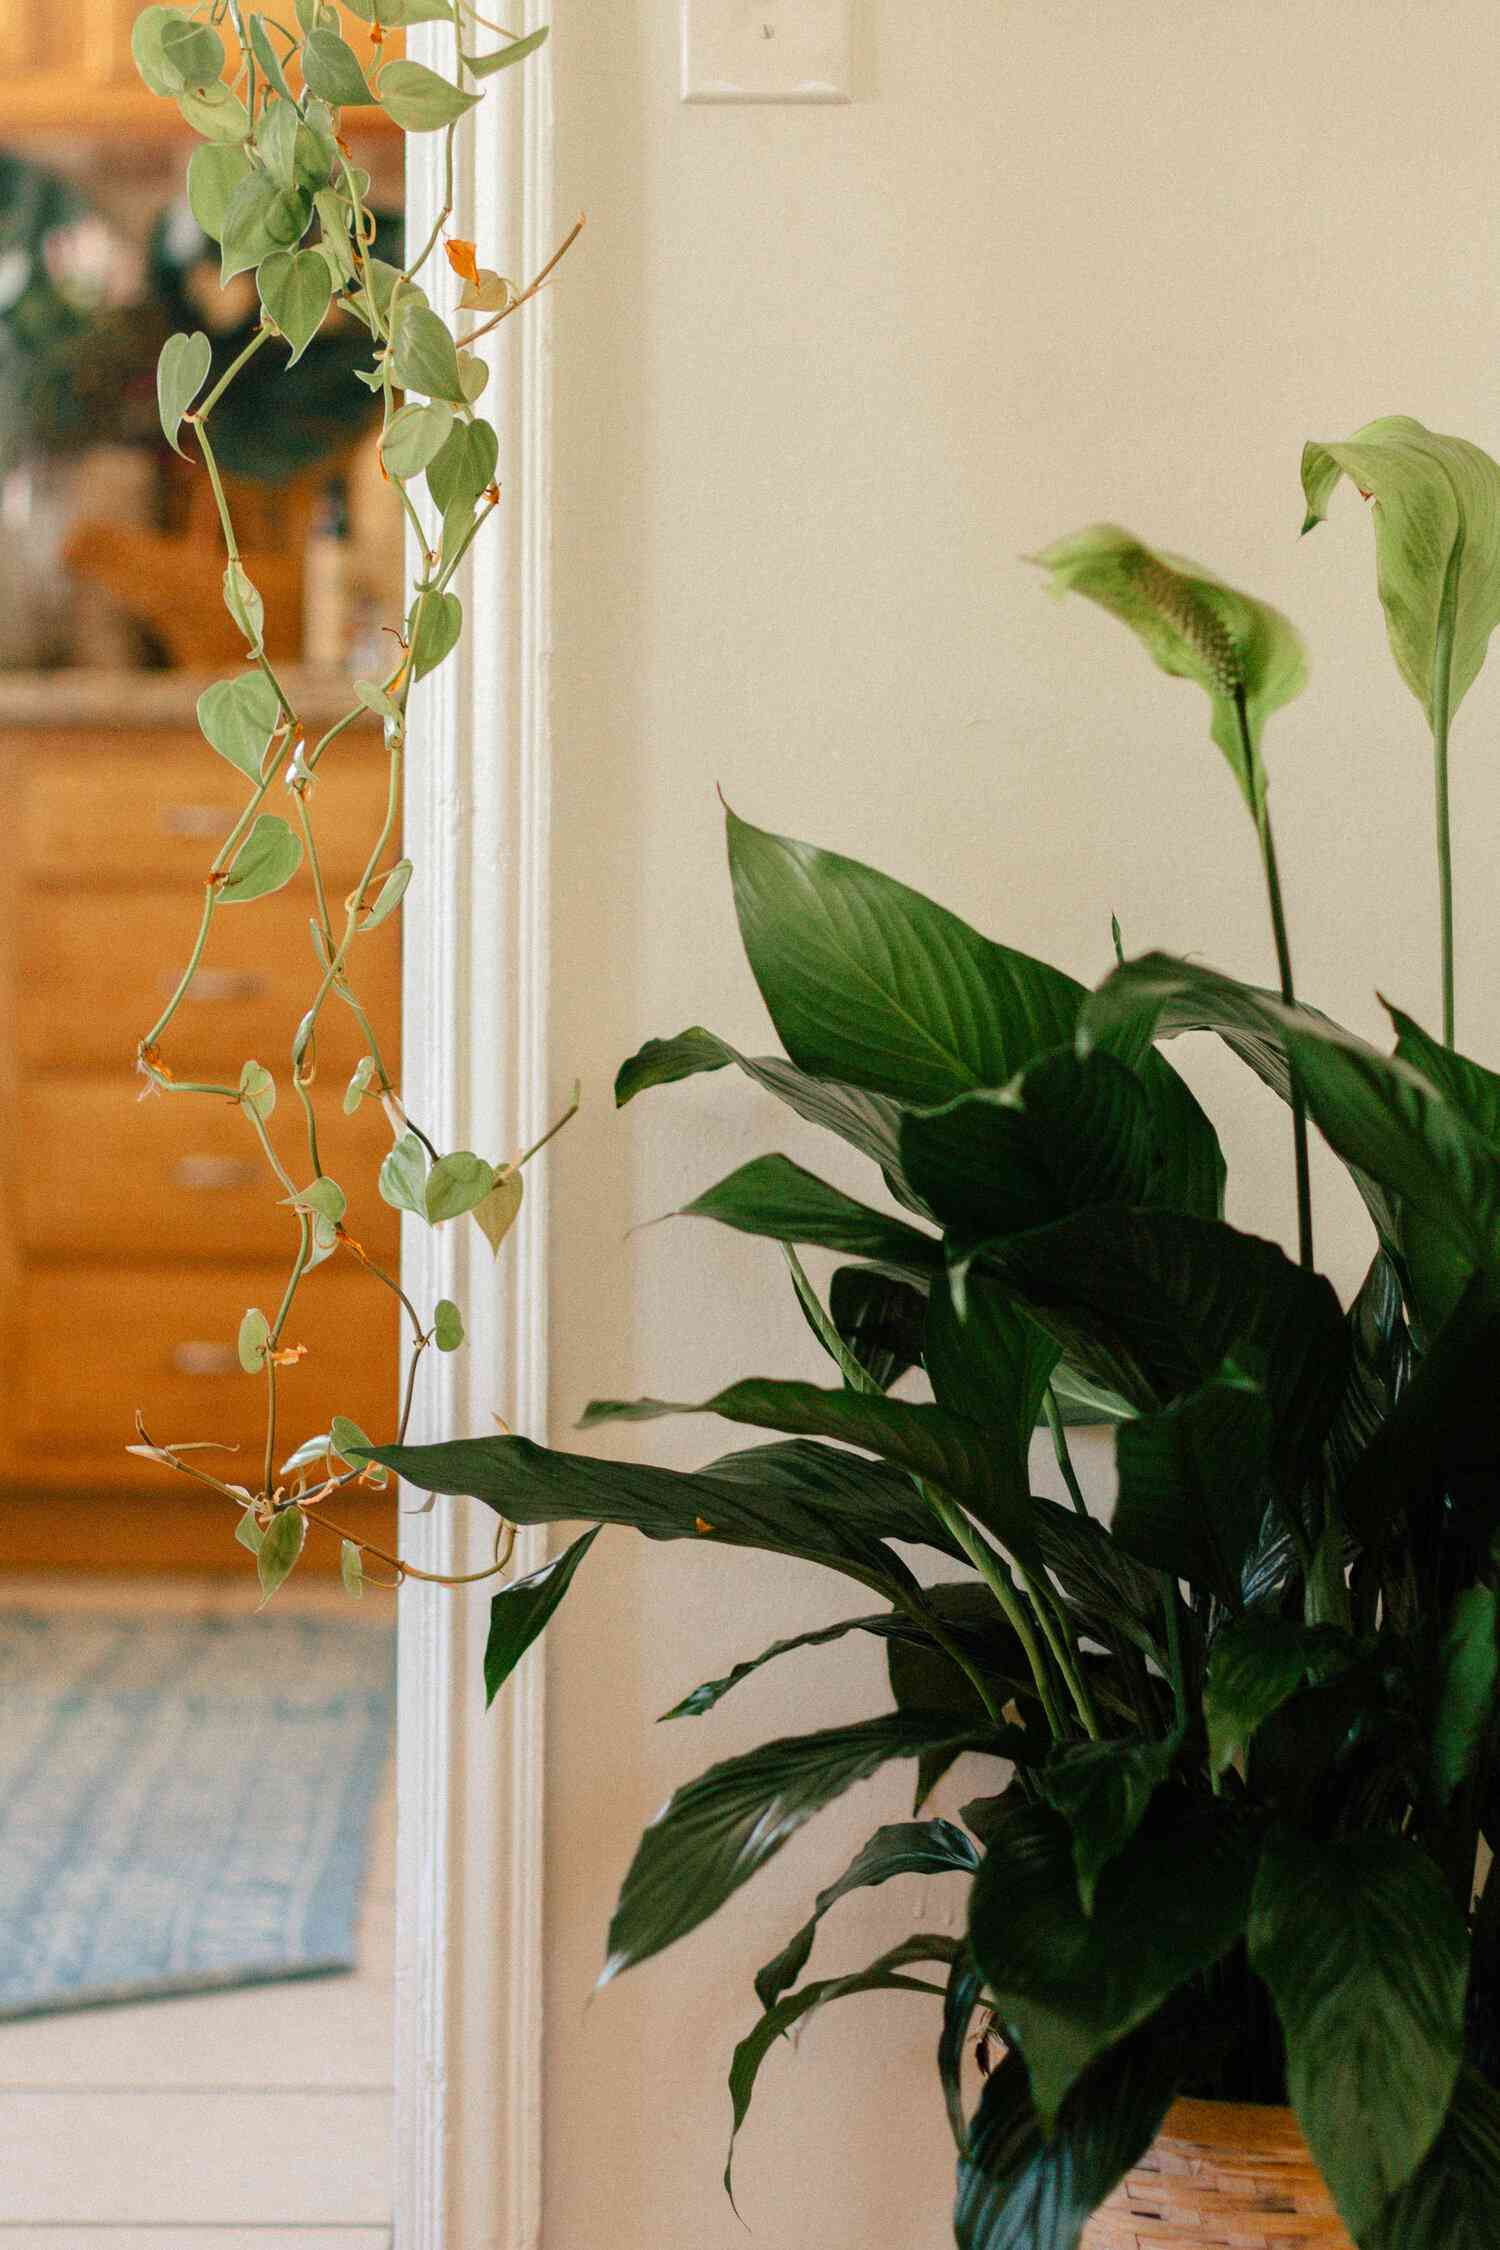 Peace lily next to a doorway